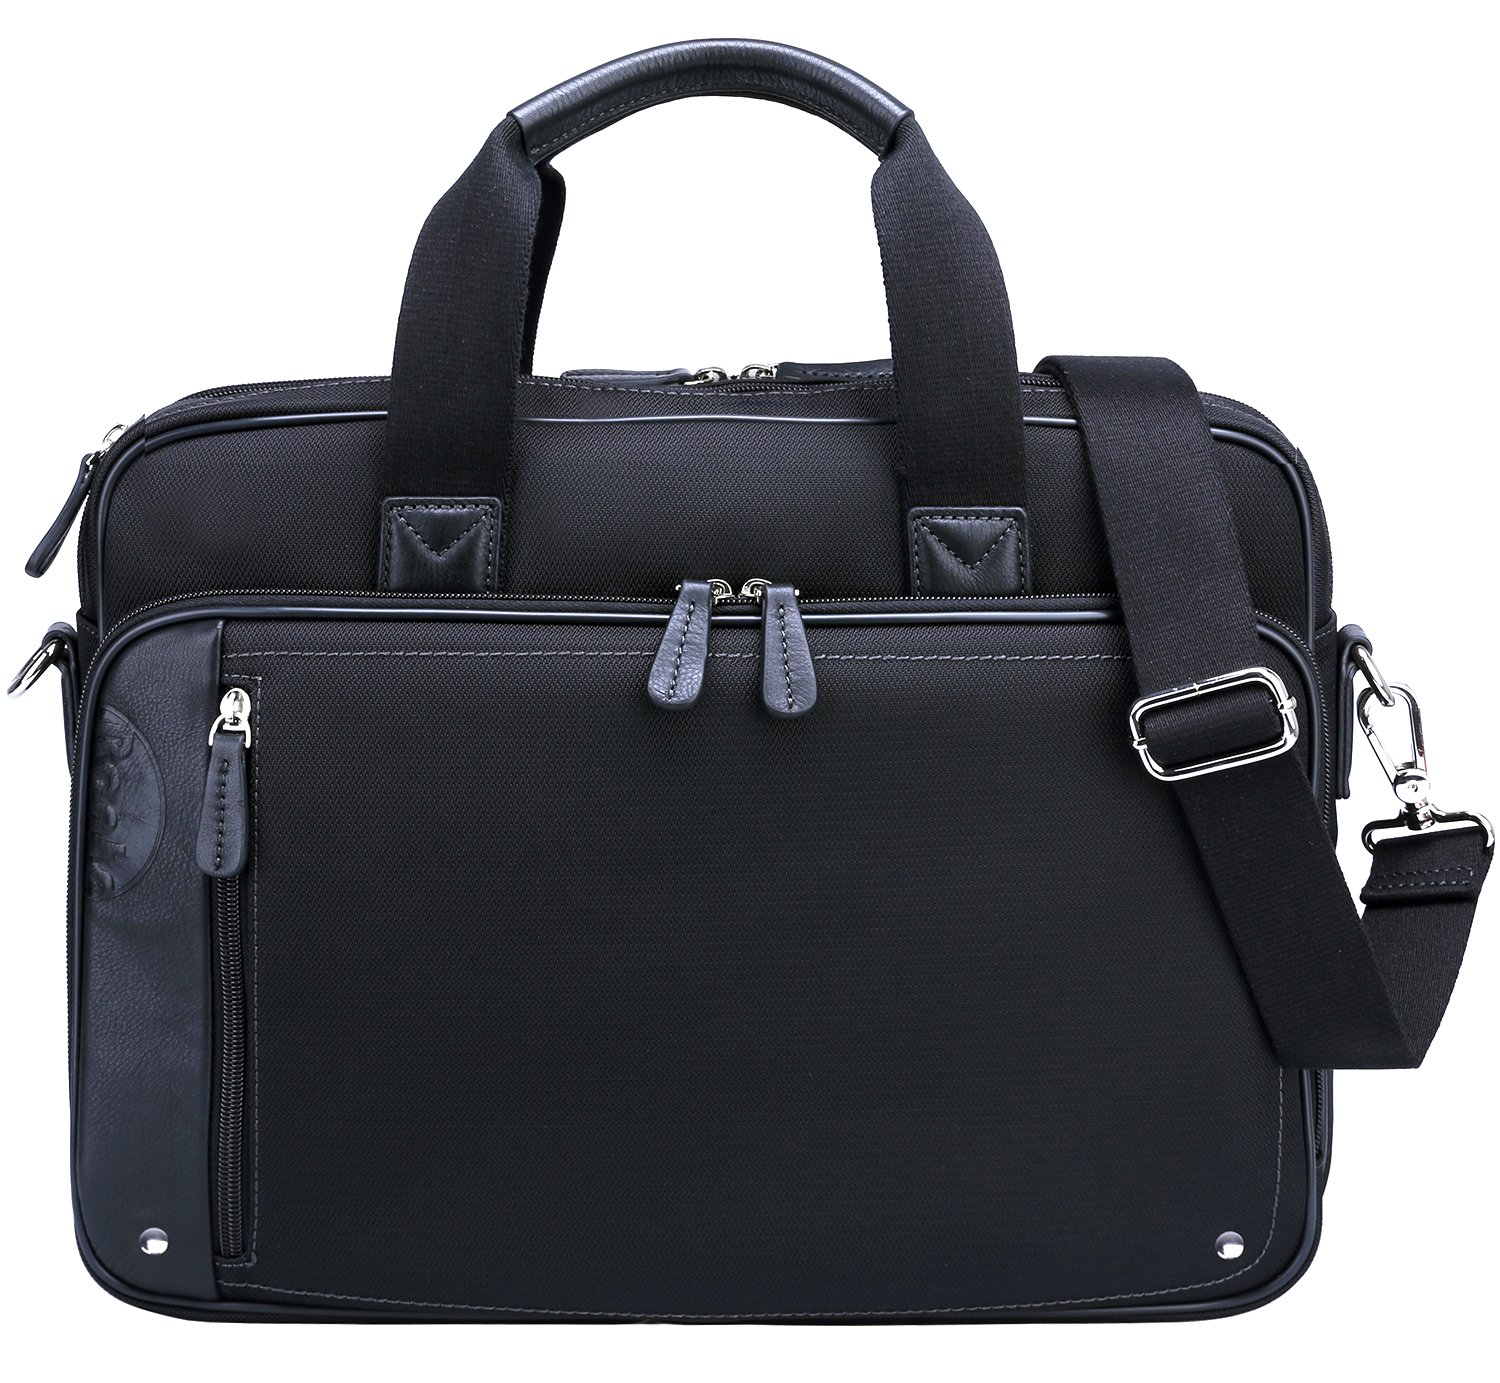 Ronts Mens Business Briefcase Nylon with Genuine Leather Messenger Bag Waterproof Shoulder Bag for 14'' Laptop 15 inch Macbook